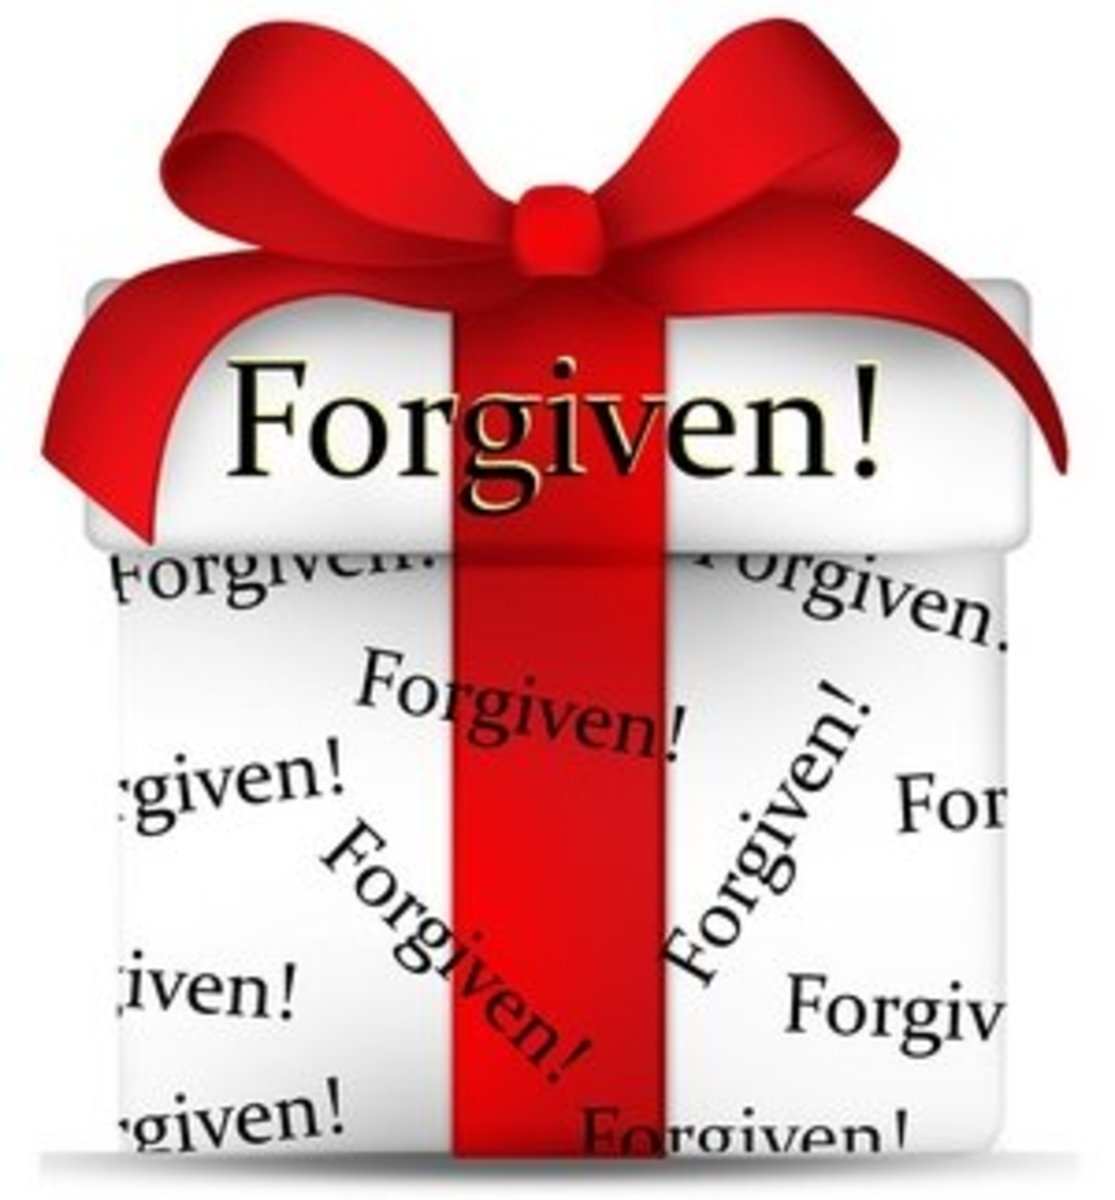 You have been forgiven.